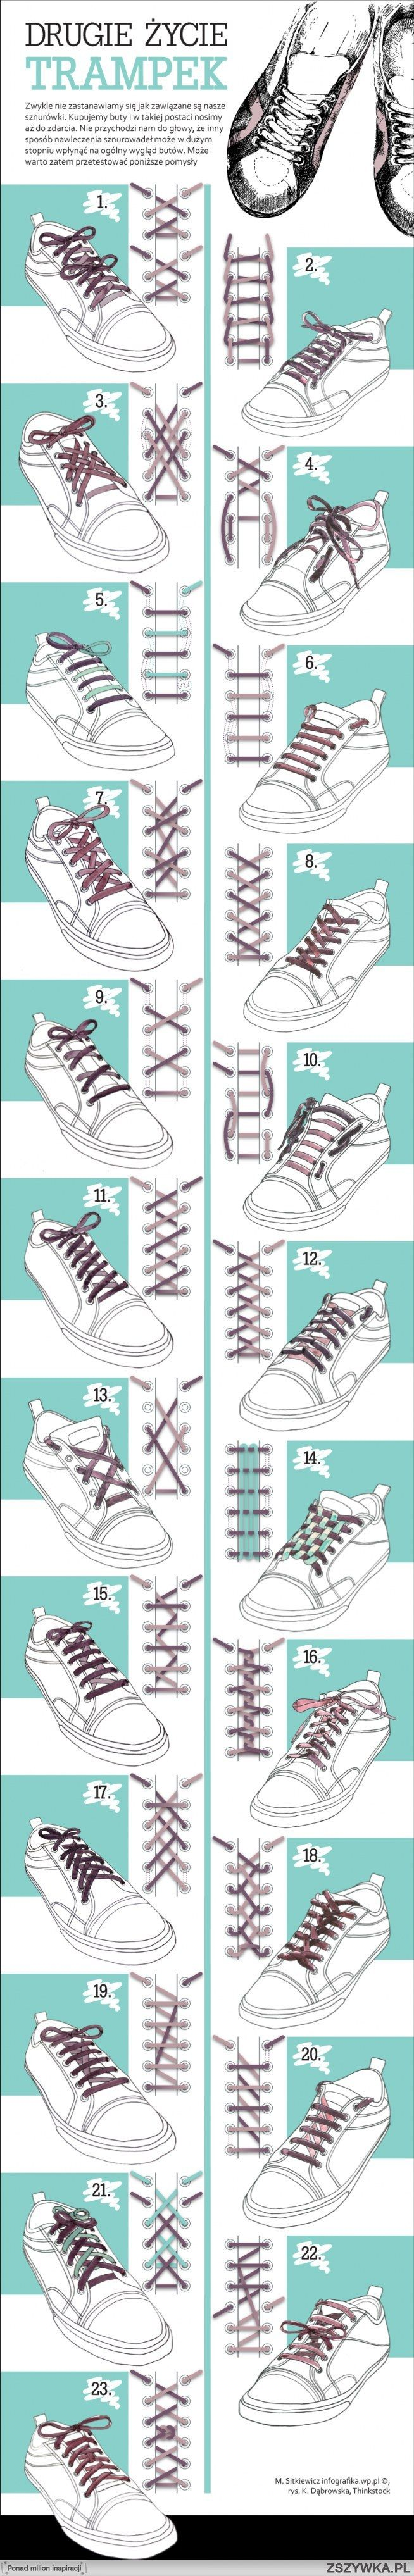 how to do different laces